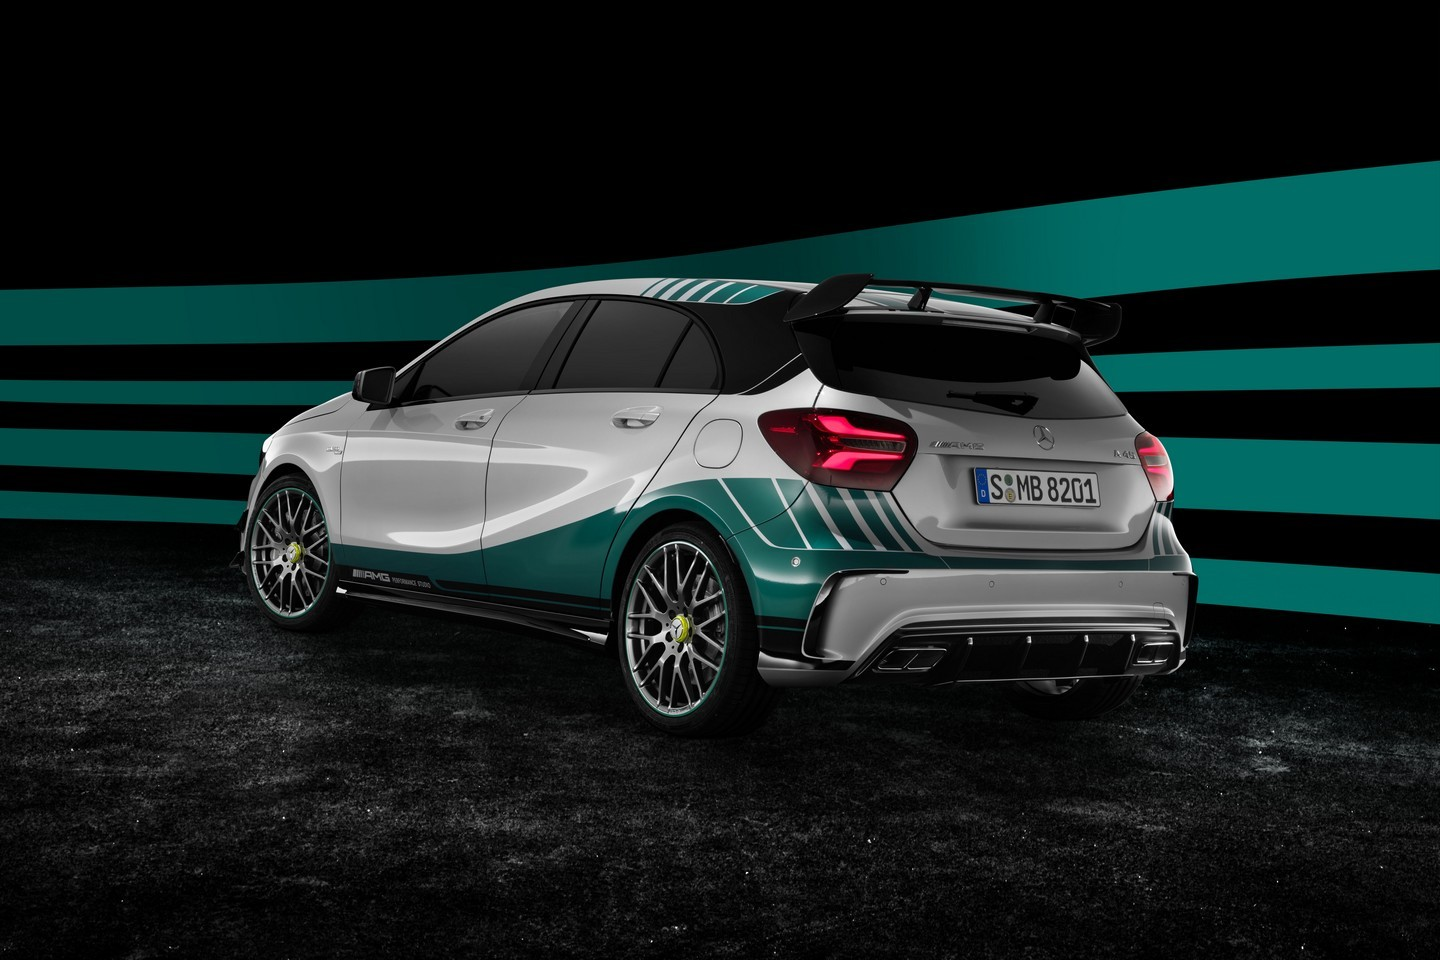 mercedes a45 amg petronas pour f ter le titre en f1. Black Bedroom Furniture Sets. Home Design Ideas